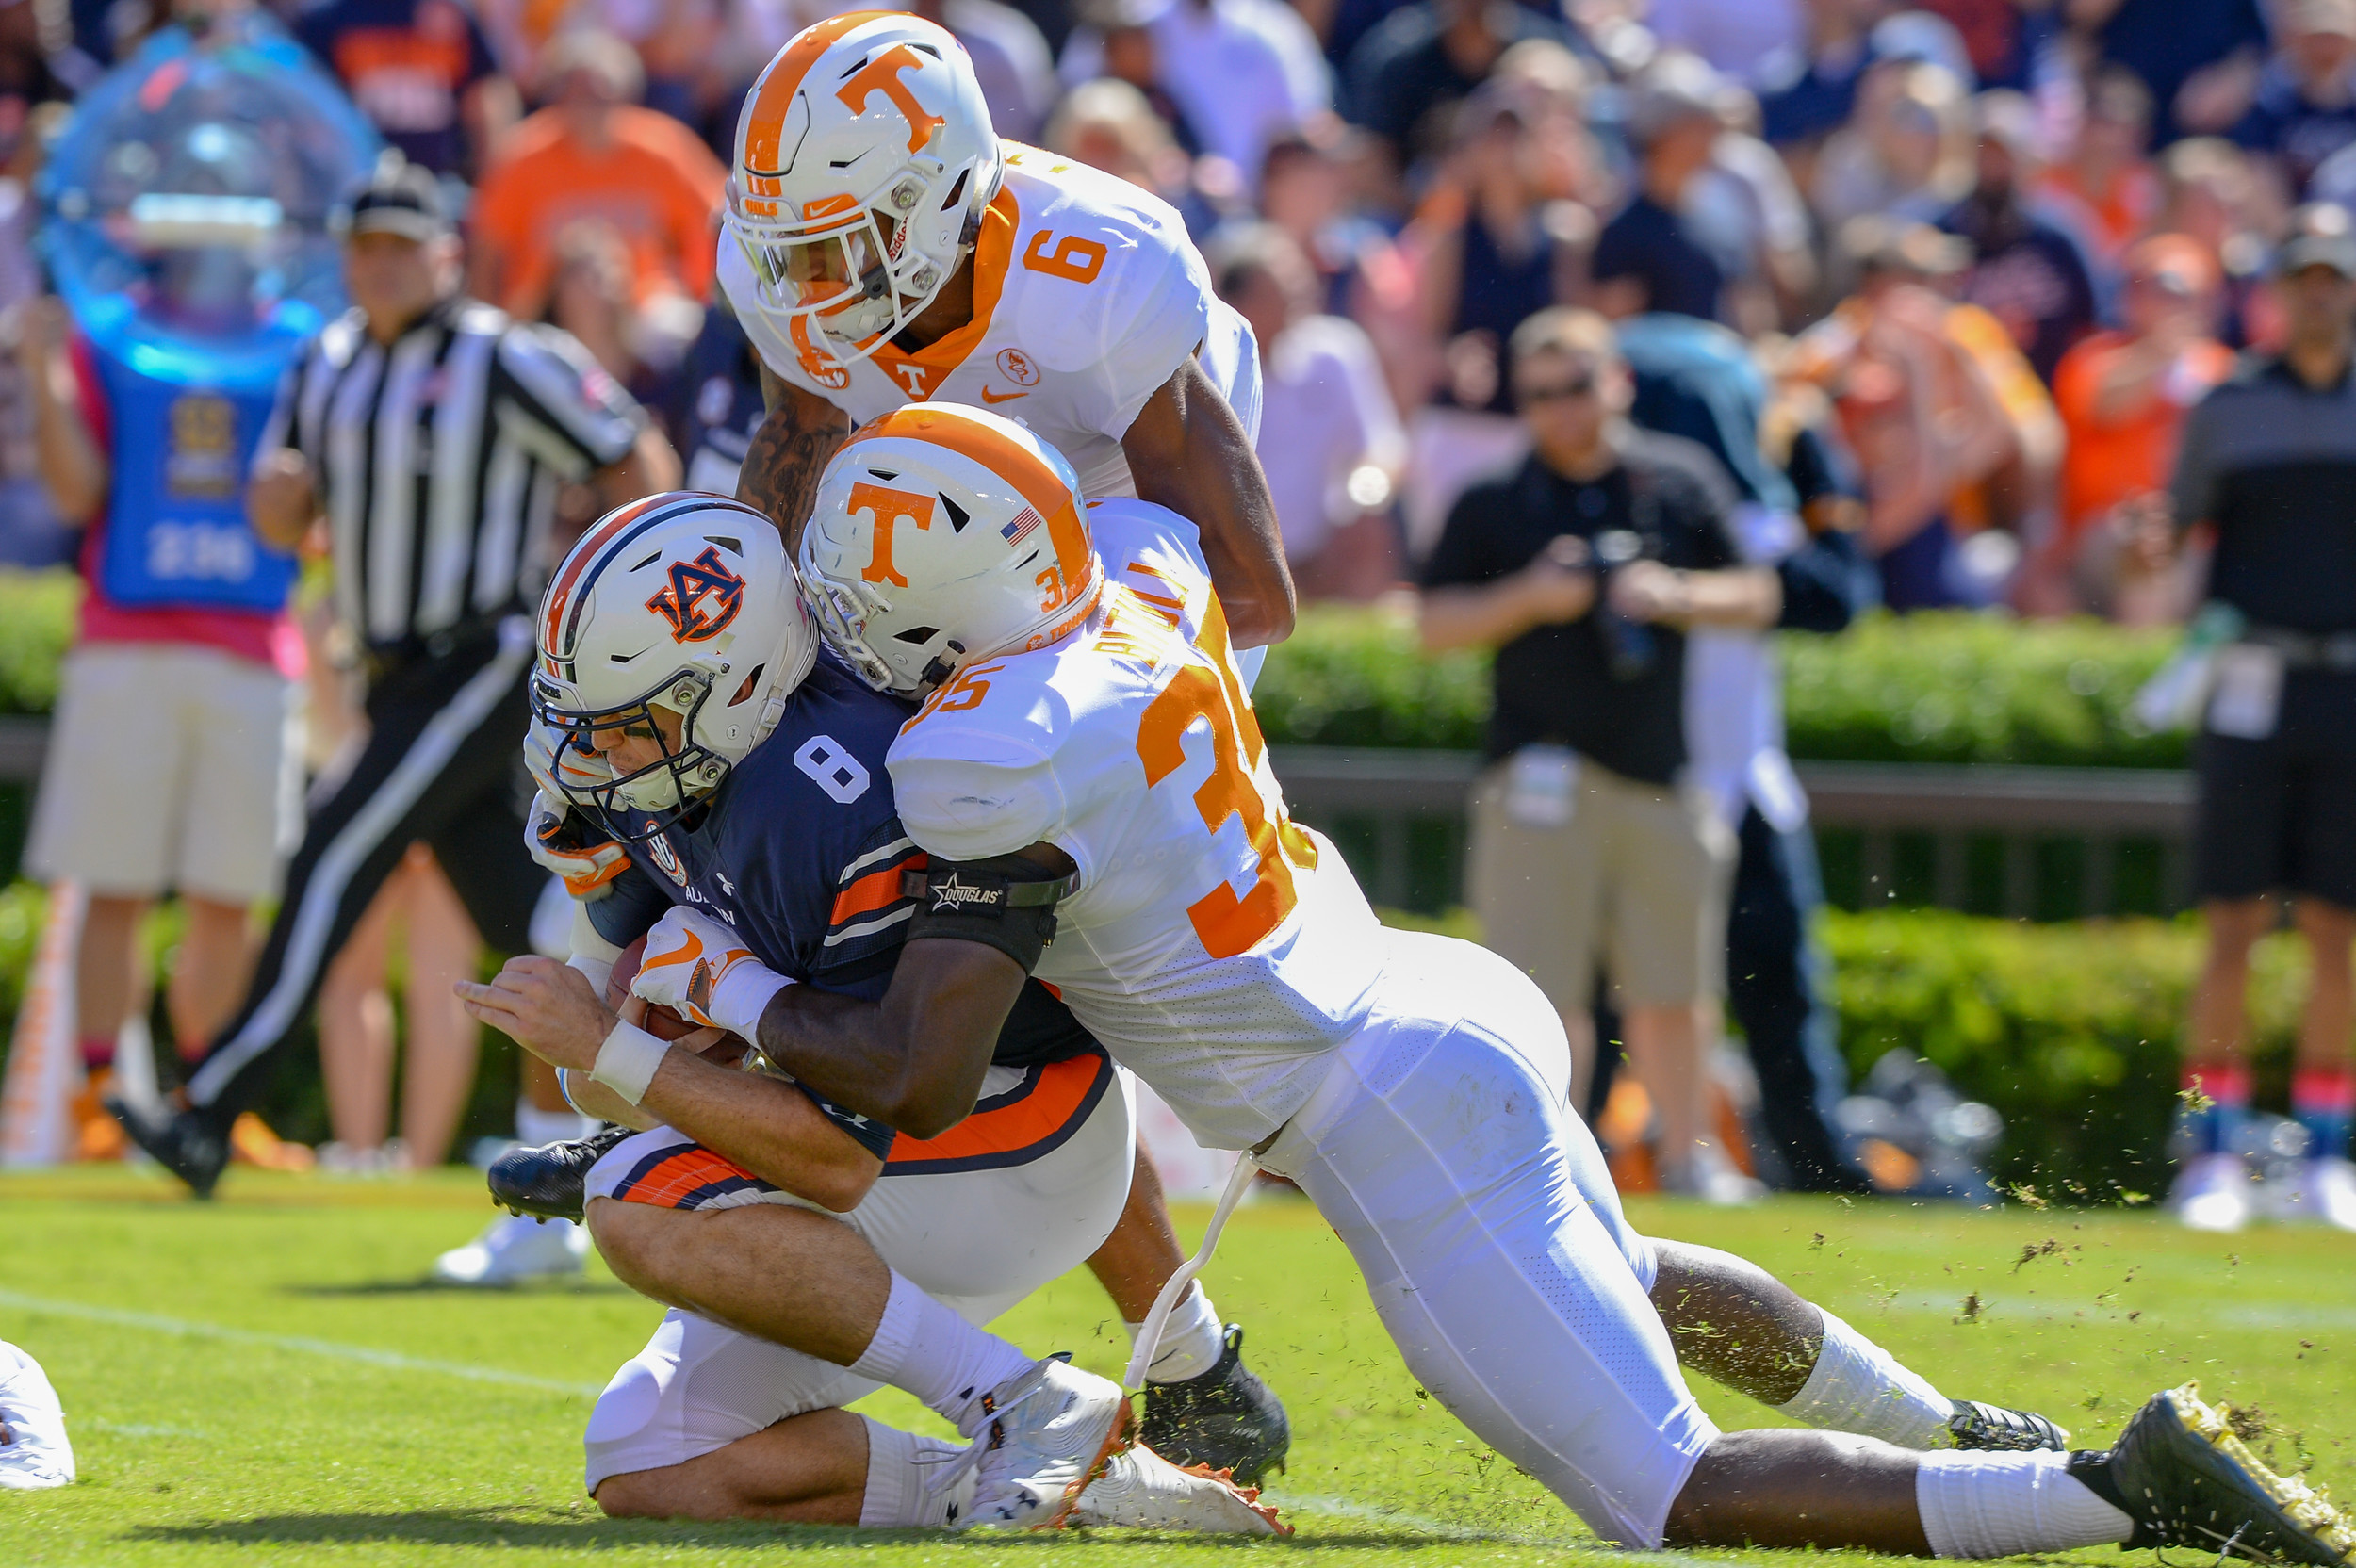 Auburn Tigers quarterback Jarrett Stidham (8) is sacked by Tennessee Volunteers linebacker Daniel Bituli (35) and  defensive back Alontae Taylor (6) during the first half of Saturday's game, at Jordan-Hare Stadium in Auburn, AL. Daily Mountain Eagle -  Jeff Johnsey